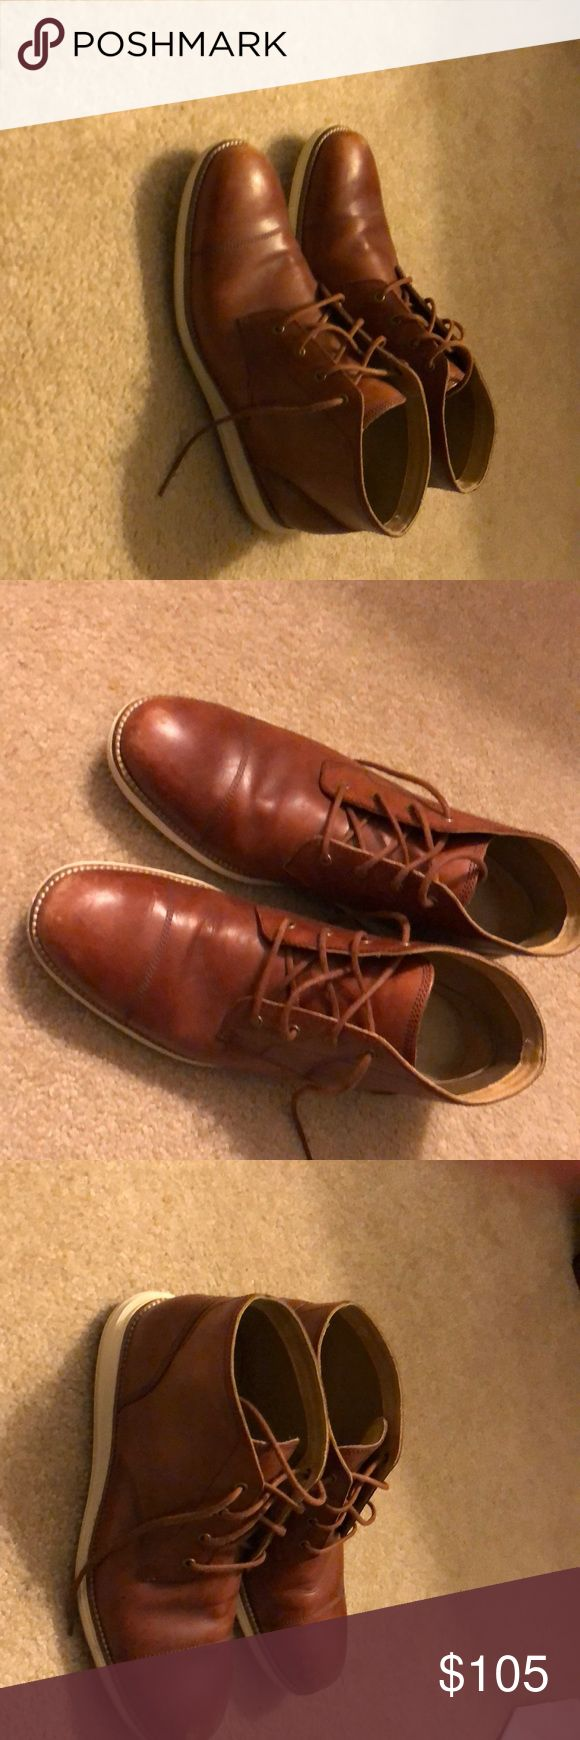 Cole haan Zero Grand Cole haan Zero Grand size 10.5.  In good condition very light and super comfortable. Cole Haan Shoes Chukka Boots